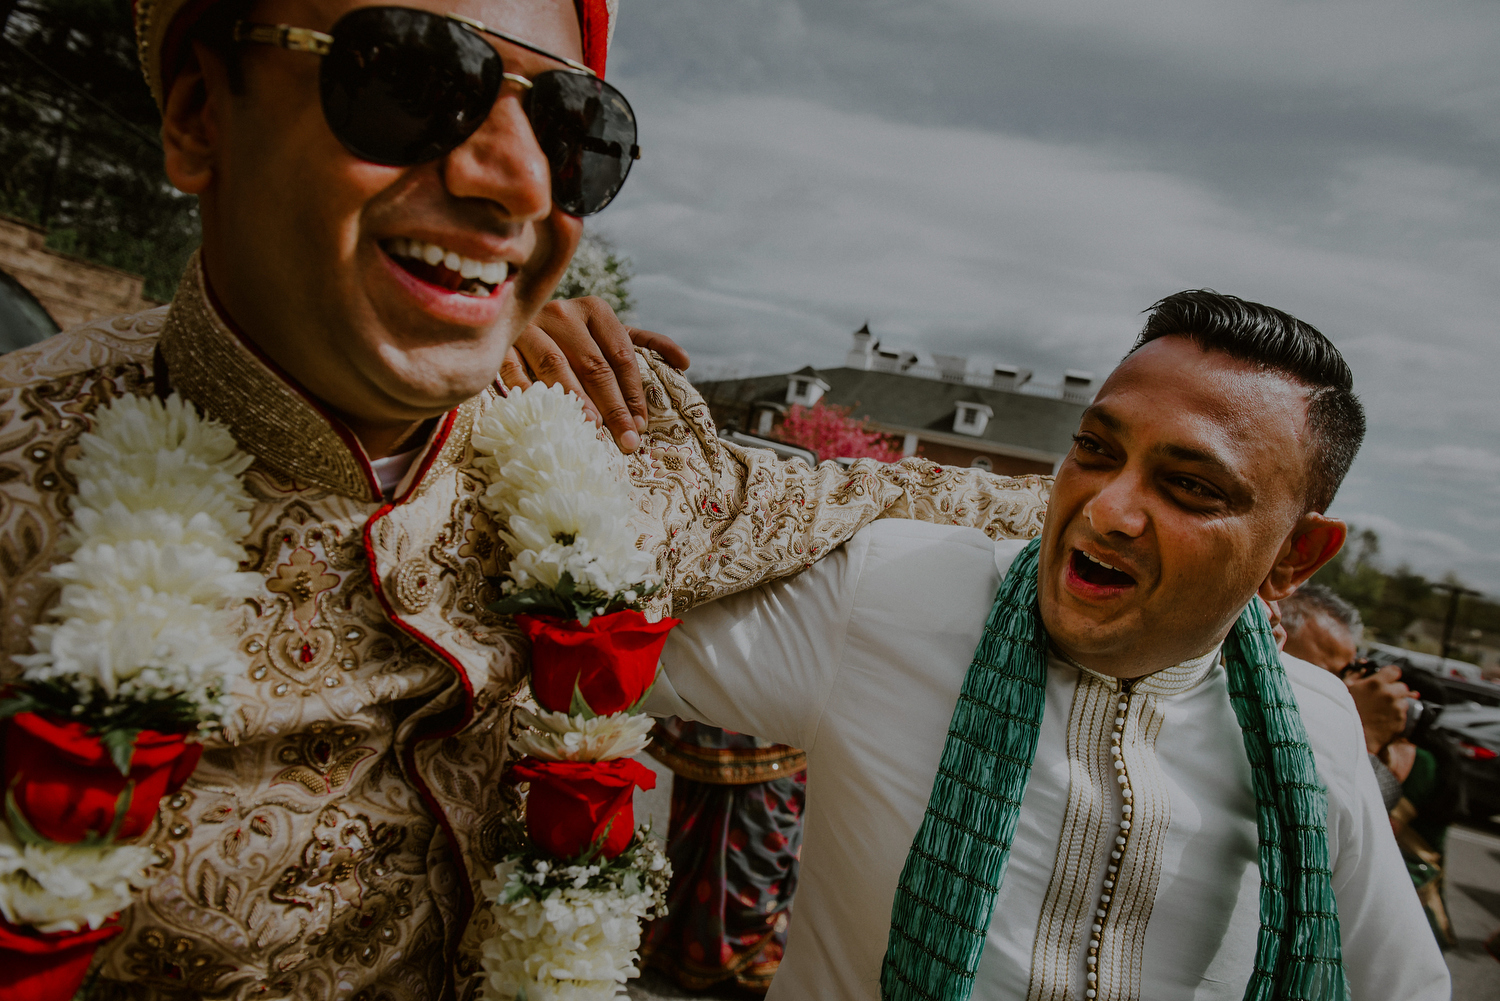 joyful baraat celebration during indian wedding